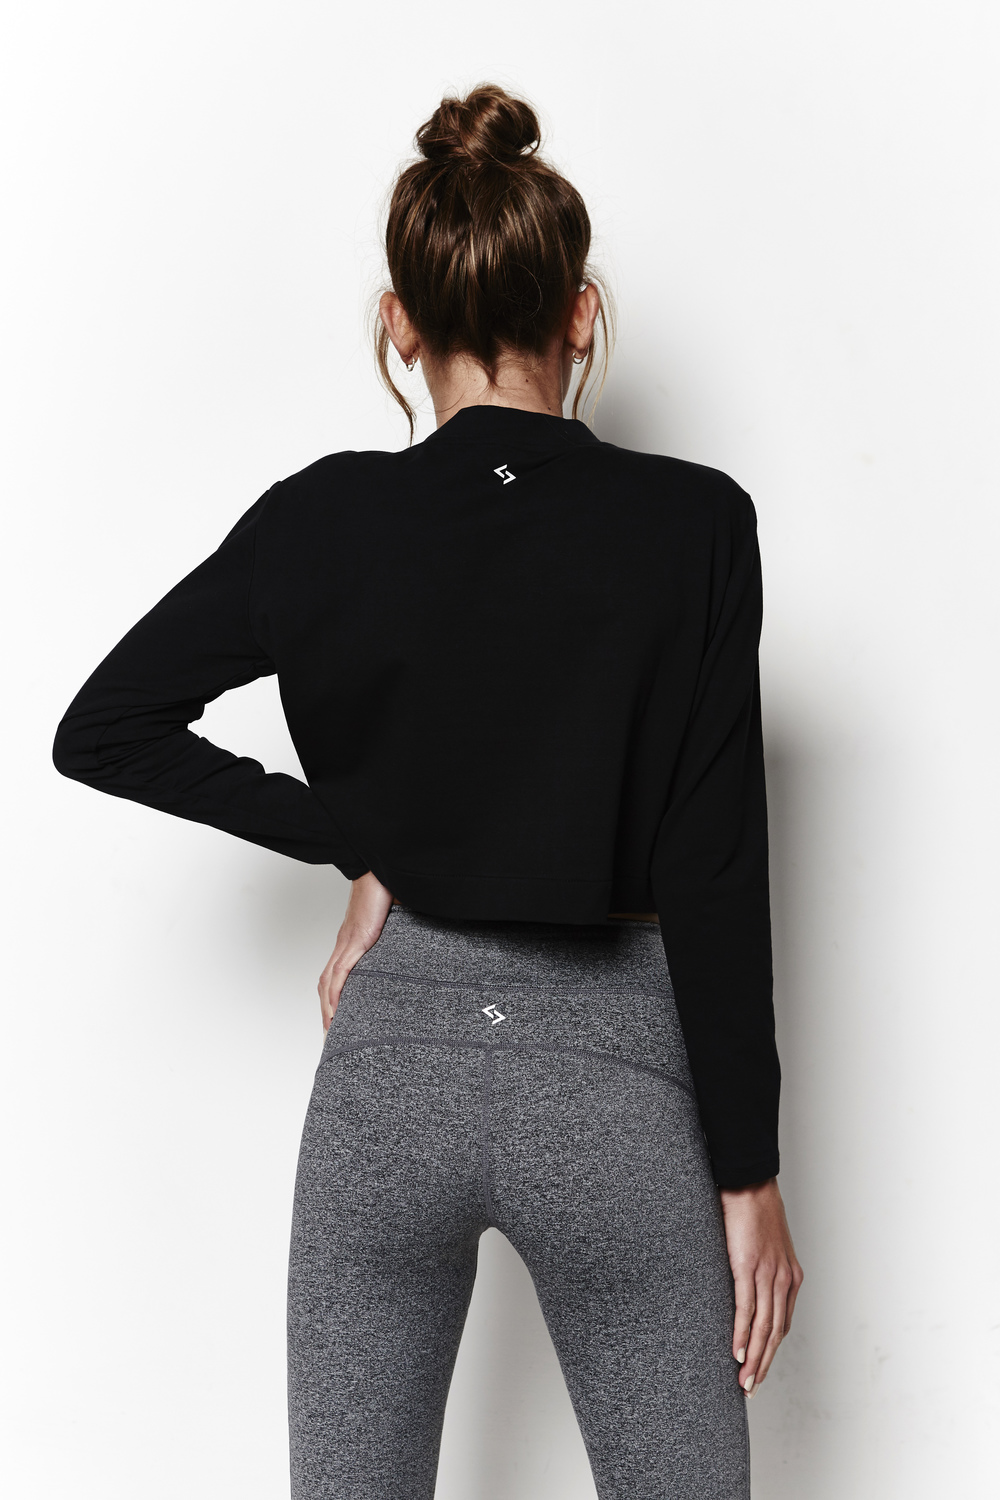 The All Day Crop Sweat - a chic layering piece which can be worn alone or over the top of your favourite white tee.